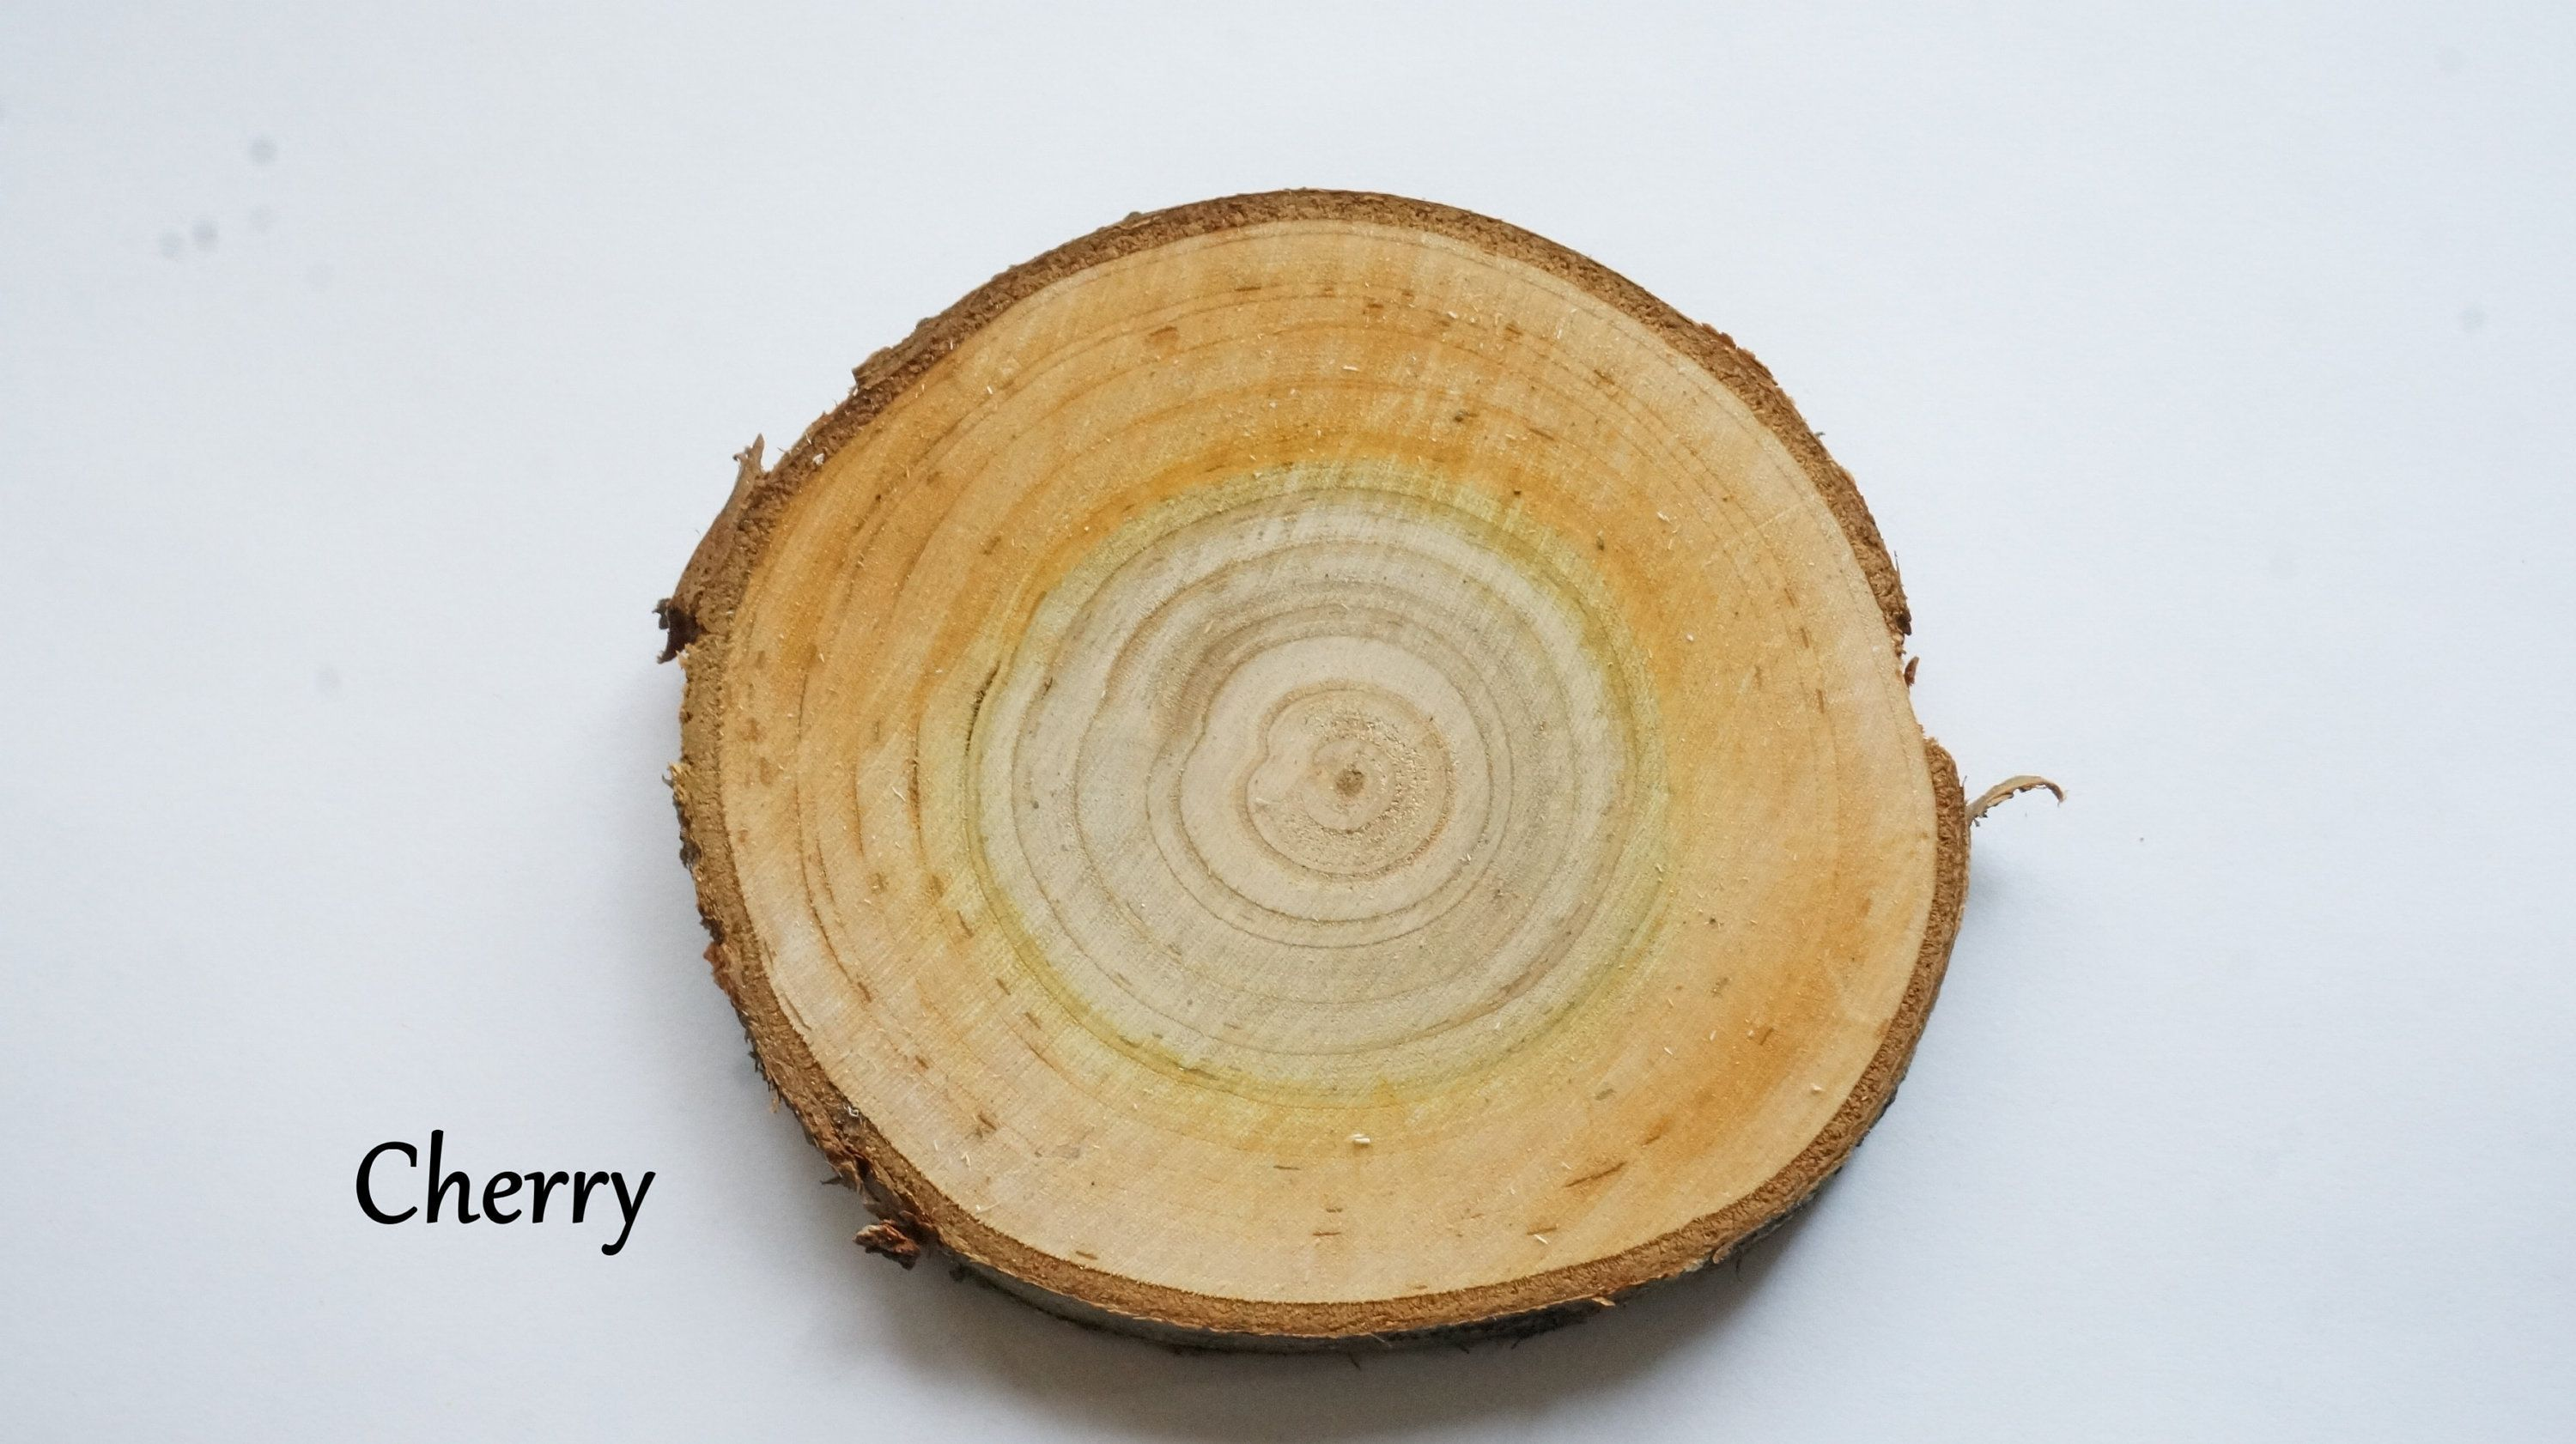 Made To Order 10 Cherry 3 4 In Wood Slices Blank Wooden Wedding Favors Bulk Tree Slab Ornaments Log Discs Py Tree Slab Wood Slices Wooden Wedding